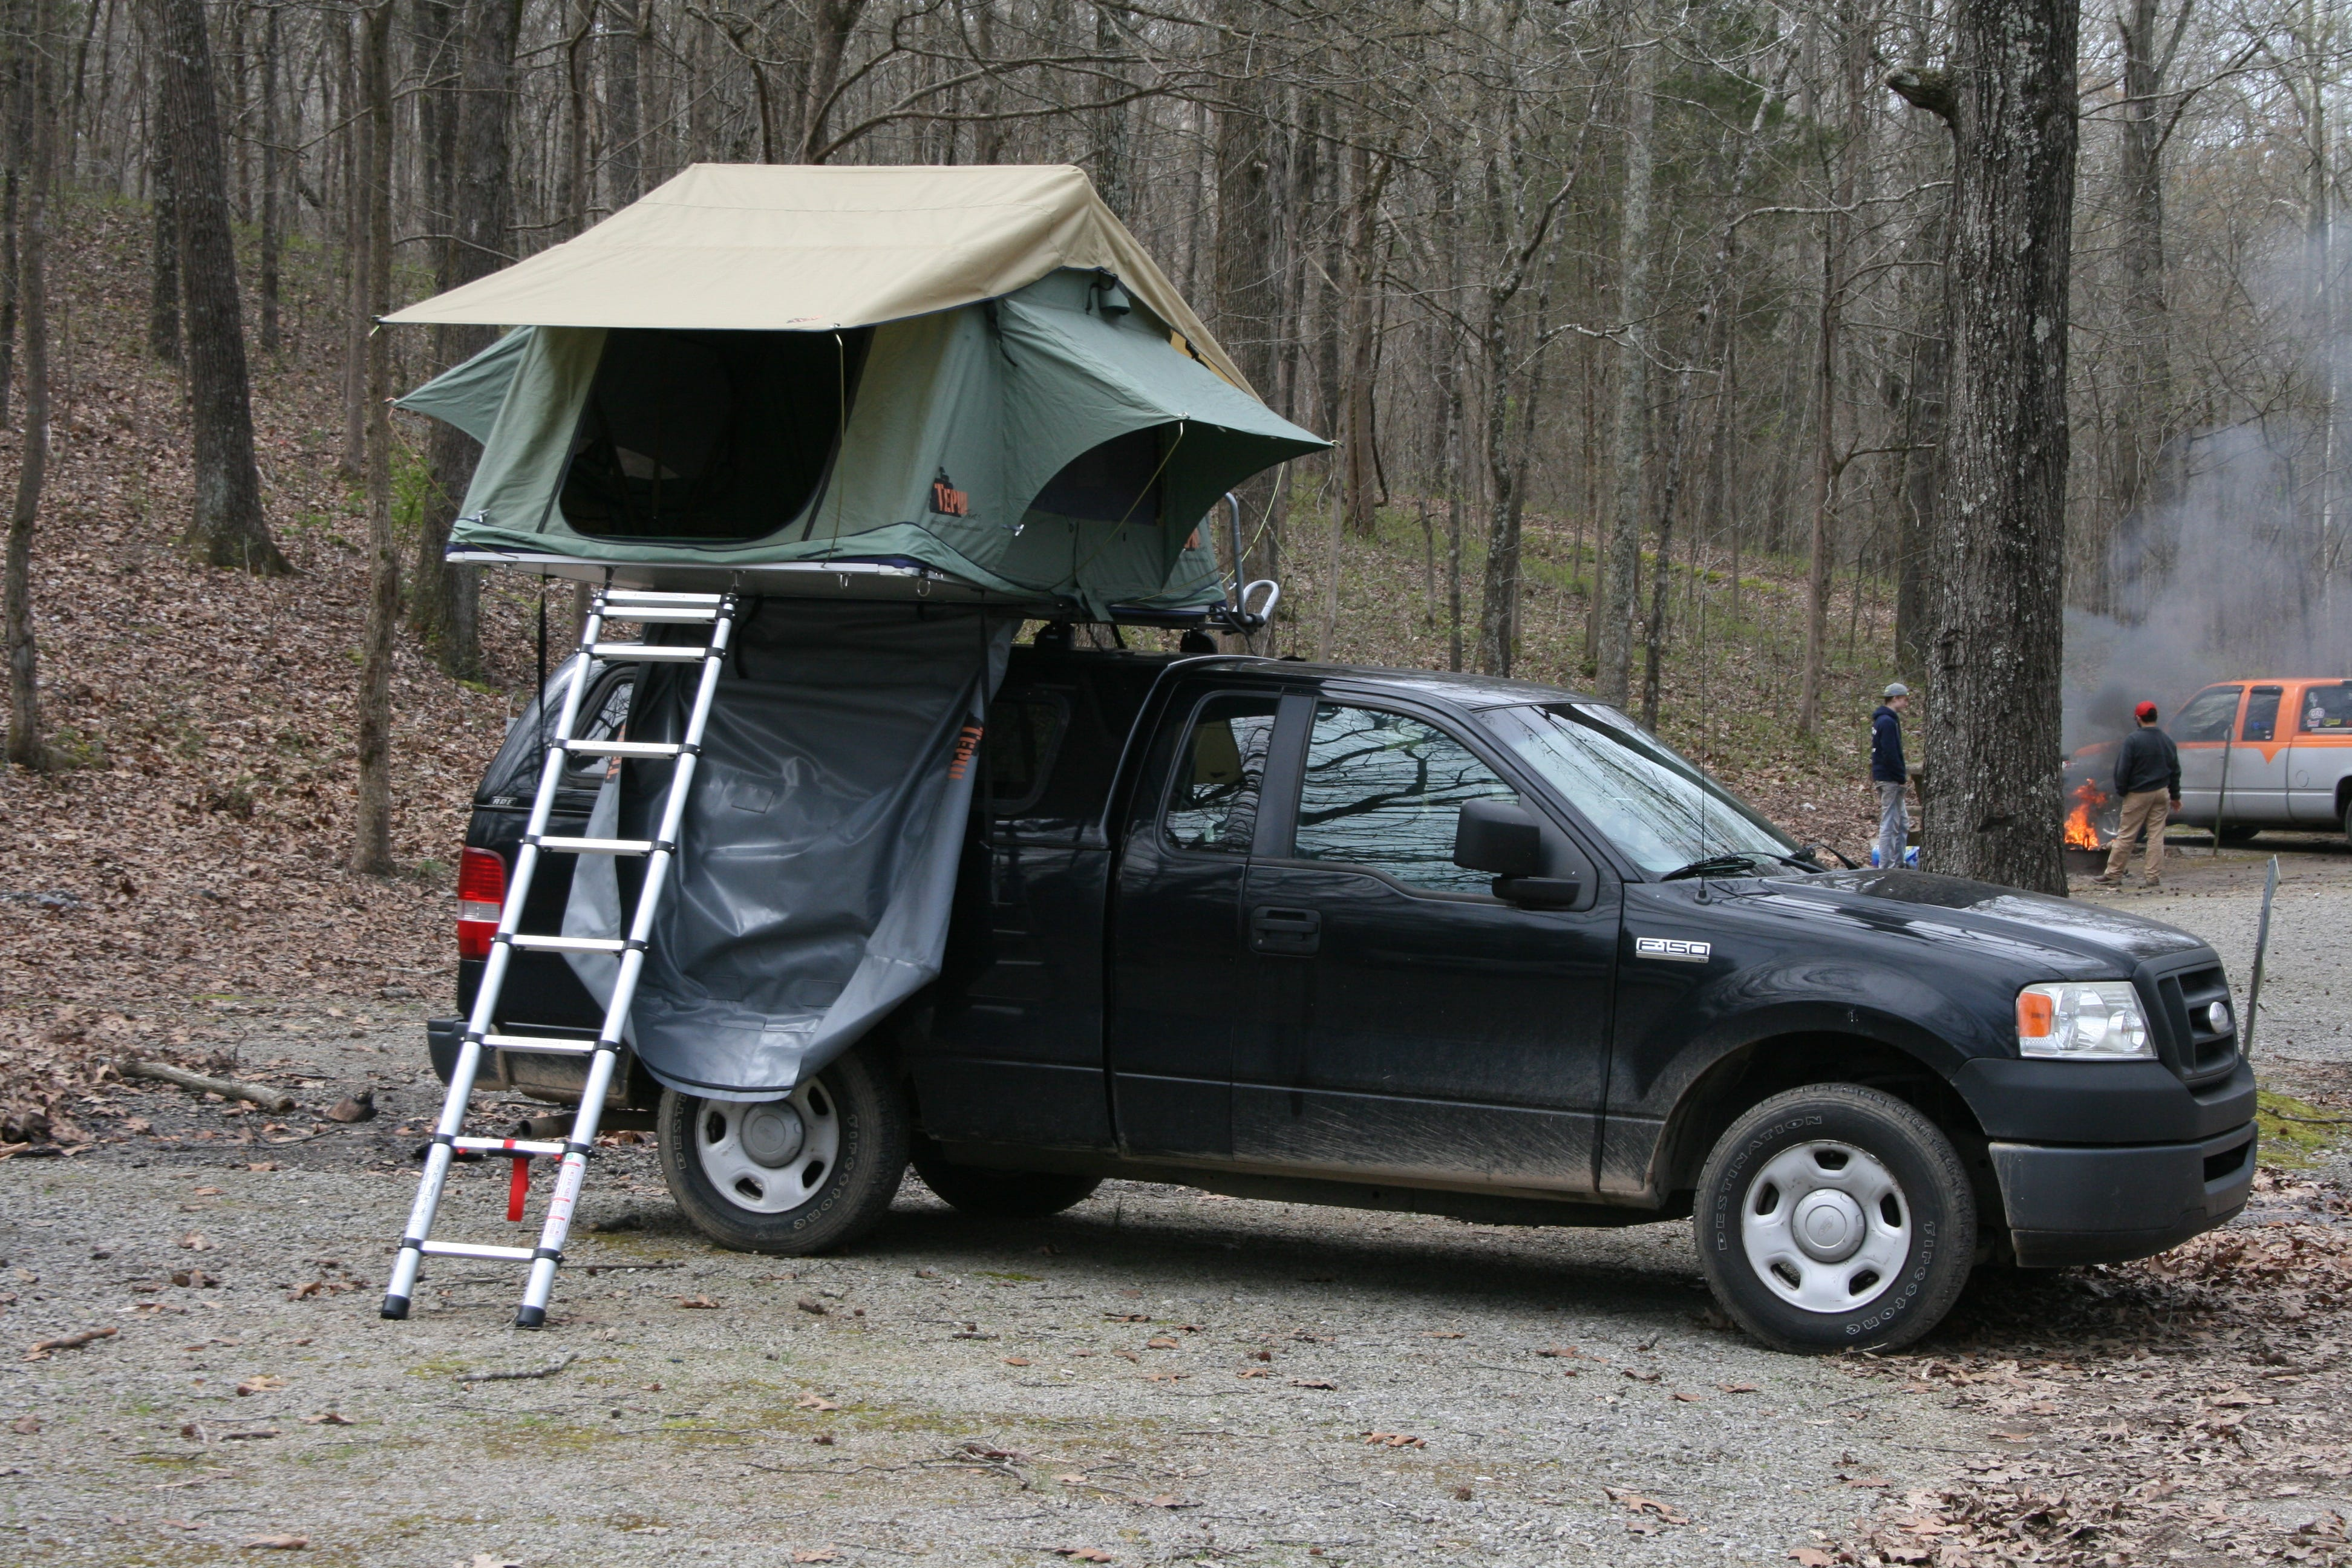 Gear review A tent that mounts on top of your car & Review: A tent that mounts on top of your car